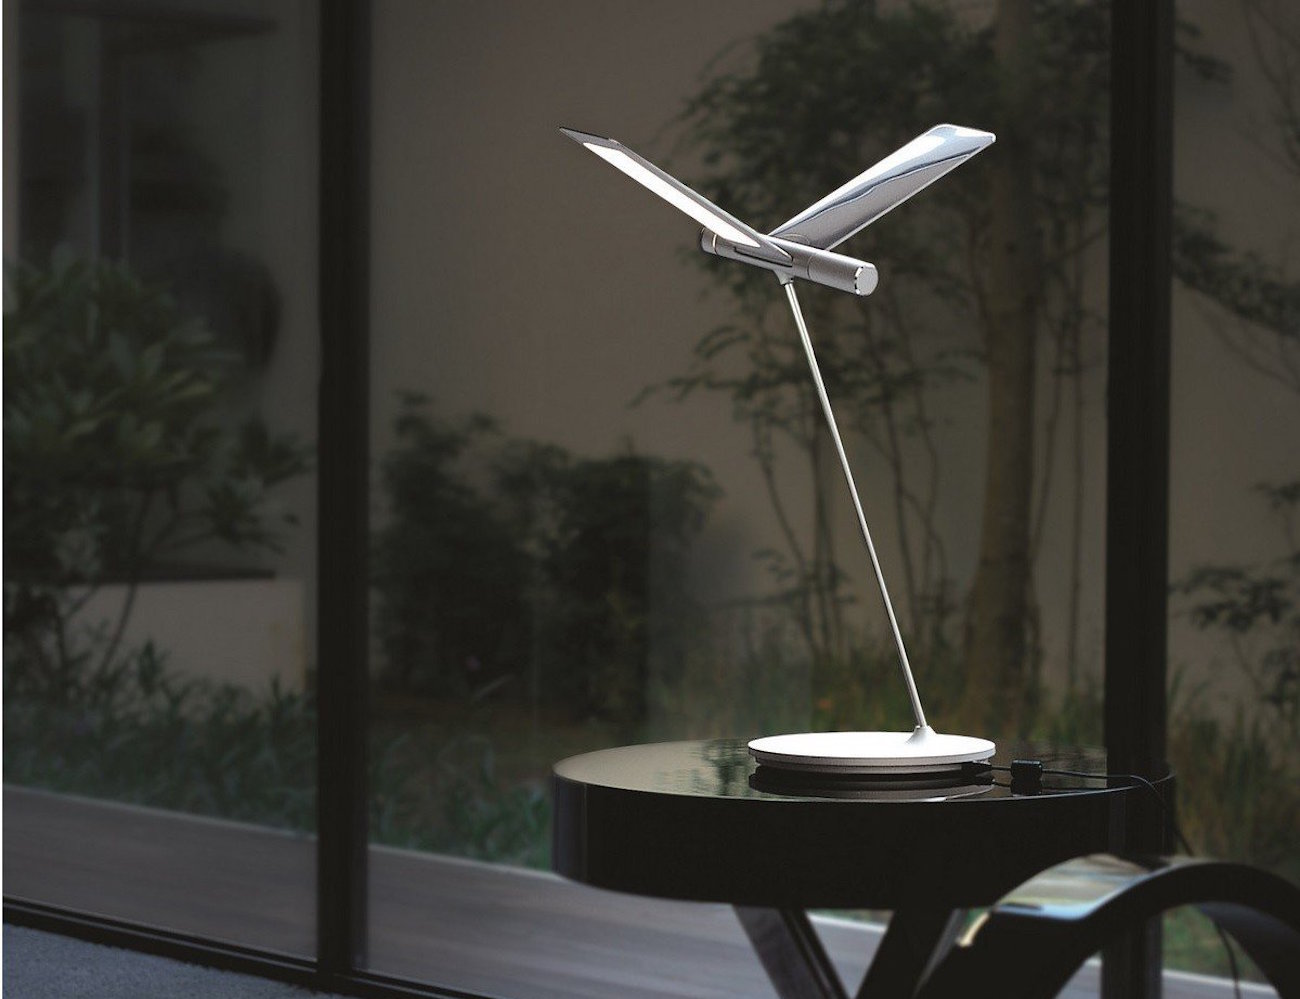 Seagull LED Desk Lamp by QisDesign